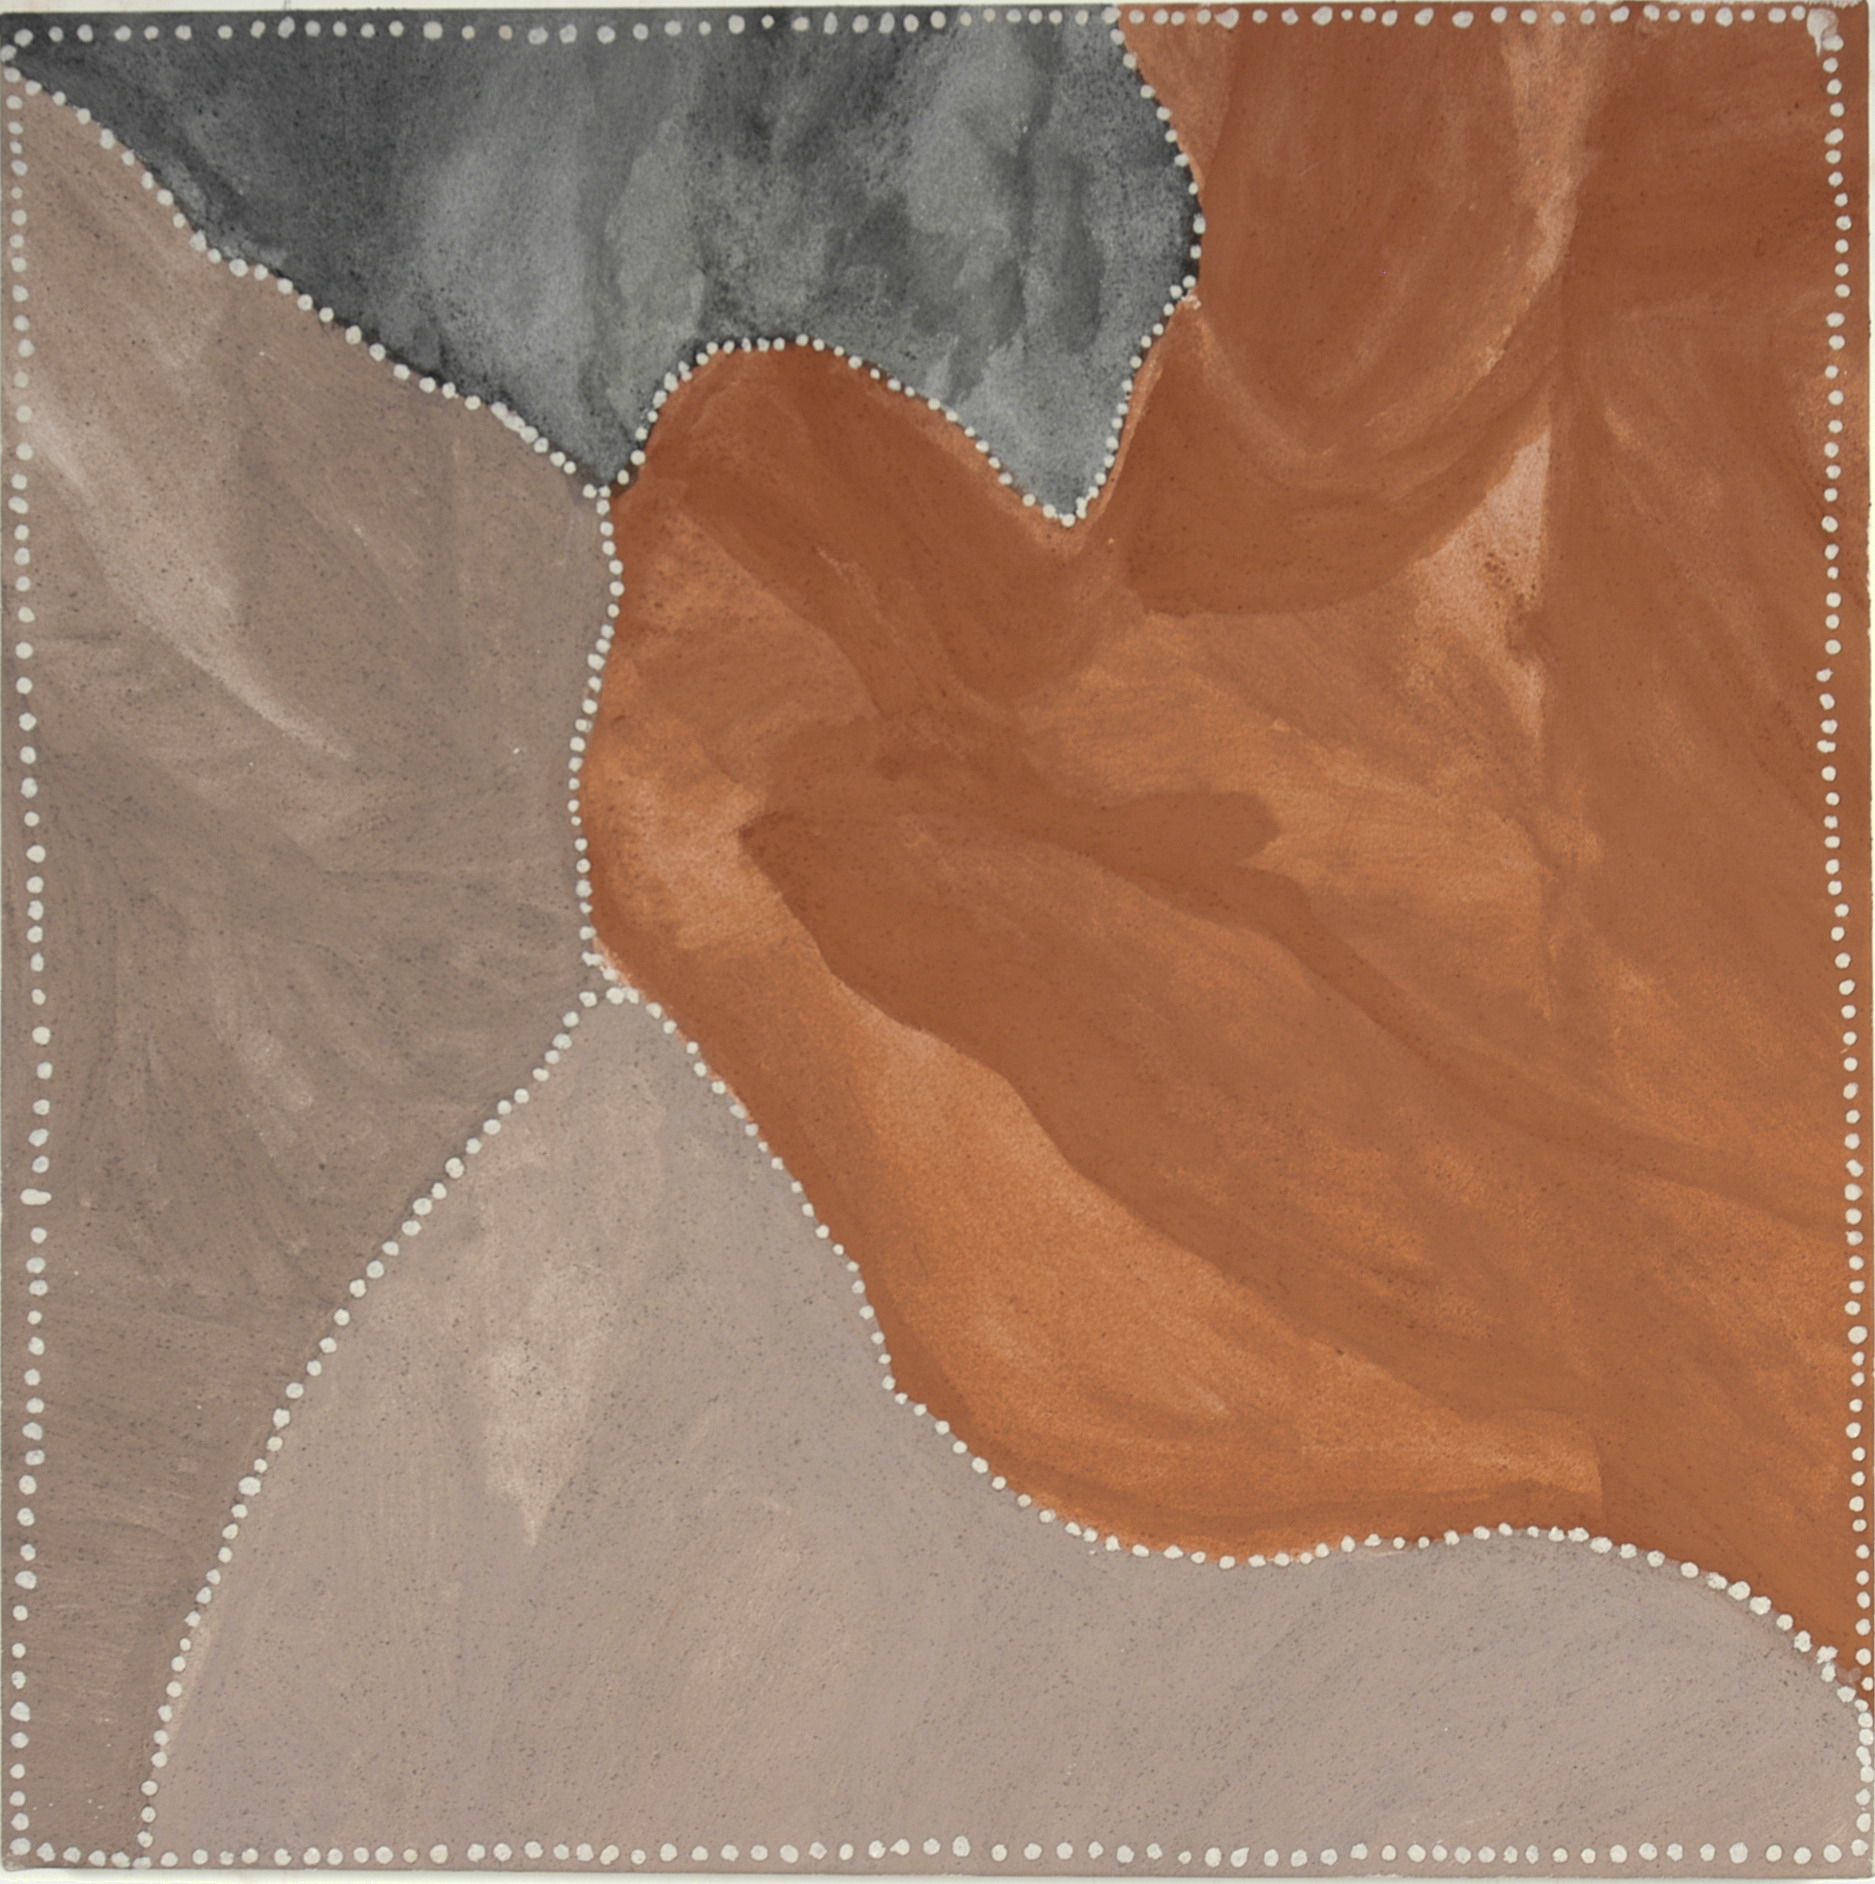 "CHURCHILL CANN   Red Butte, 2009  Natural earth pigment on canvas 31.5 x 31.5"" (80 x 80cm)  Warmun Catalog #201/09   EMAIL INQUIRY"